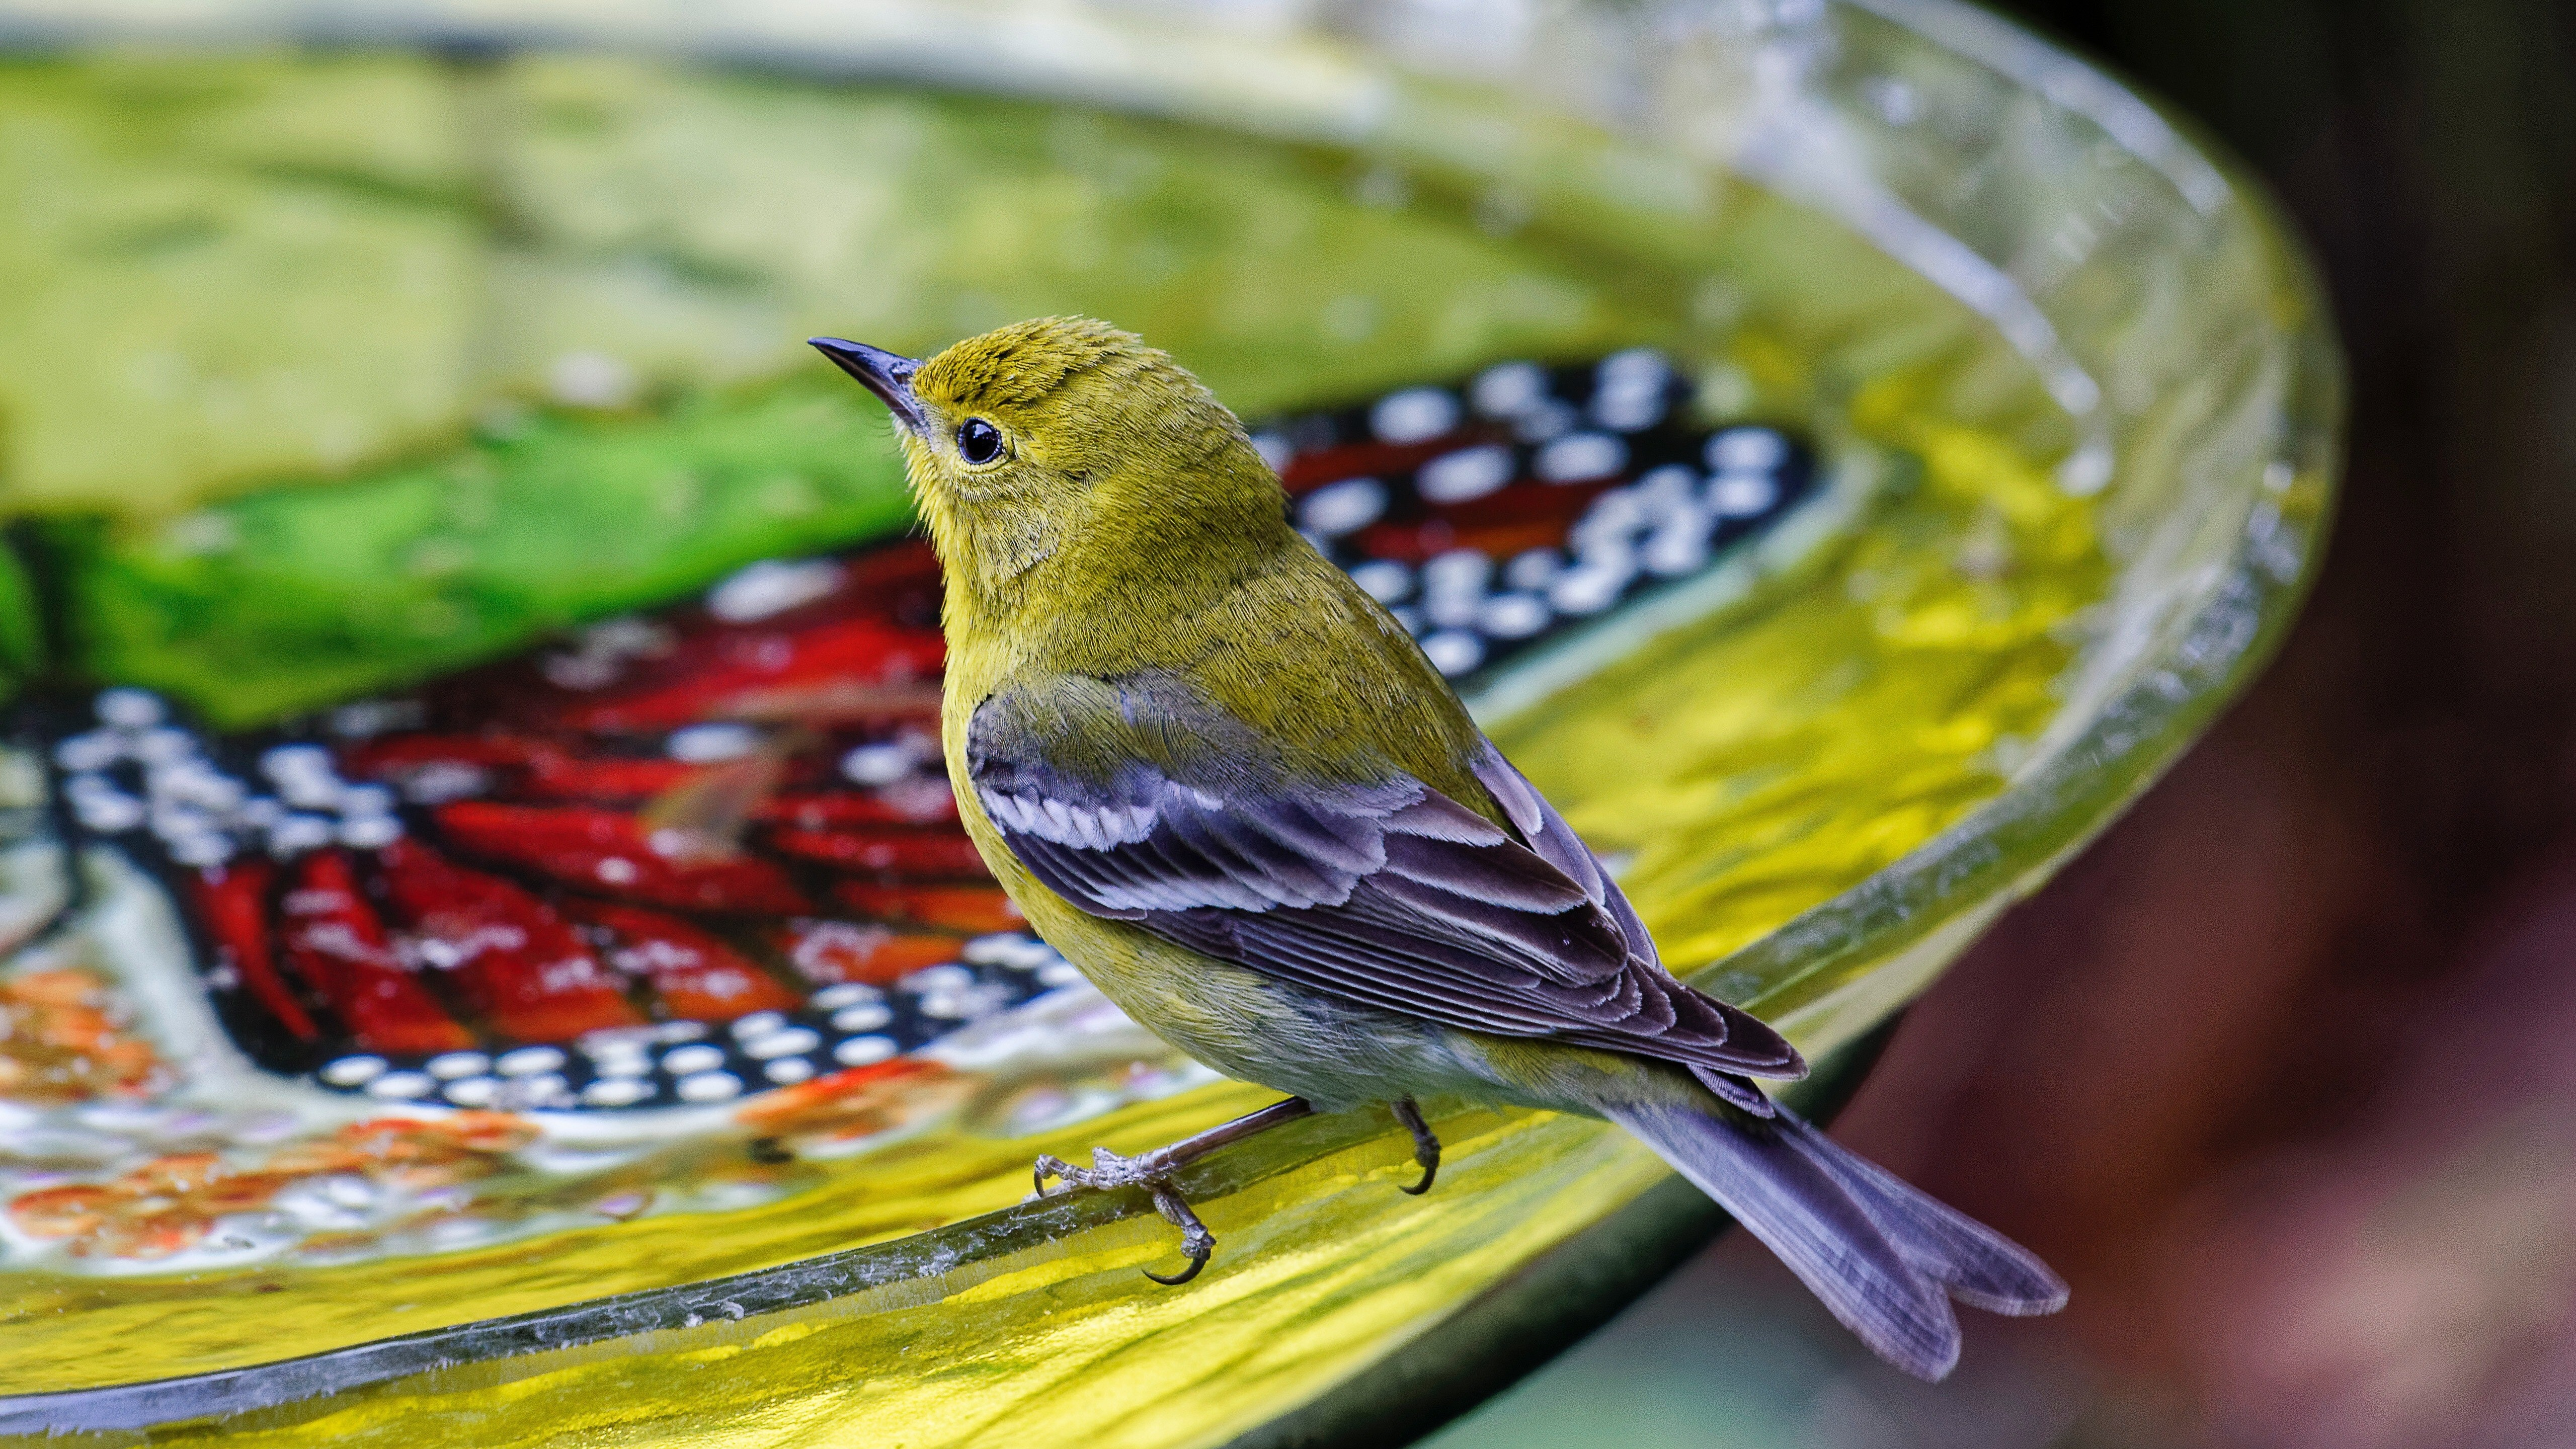 Bird with Yellow Color Drink Water 5K Images | HD Wallpapers